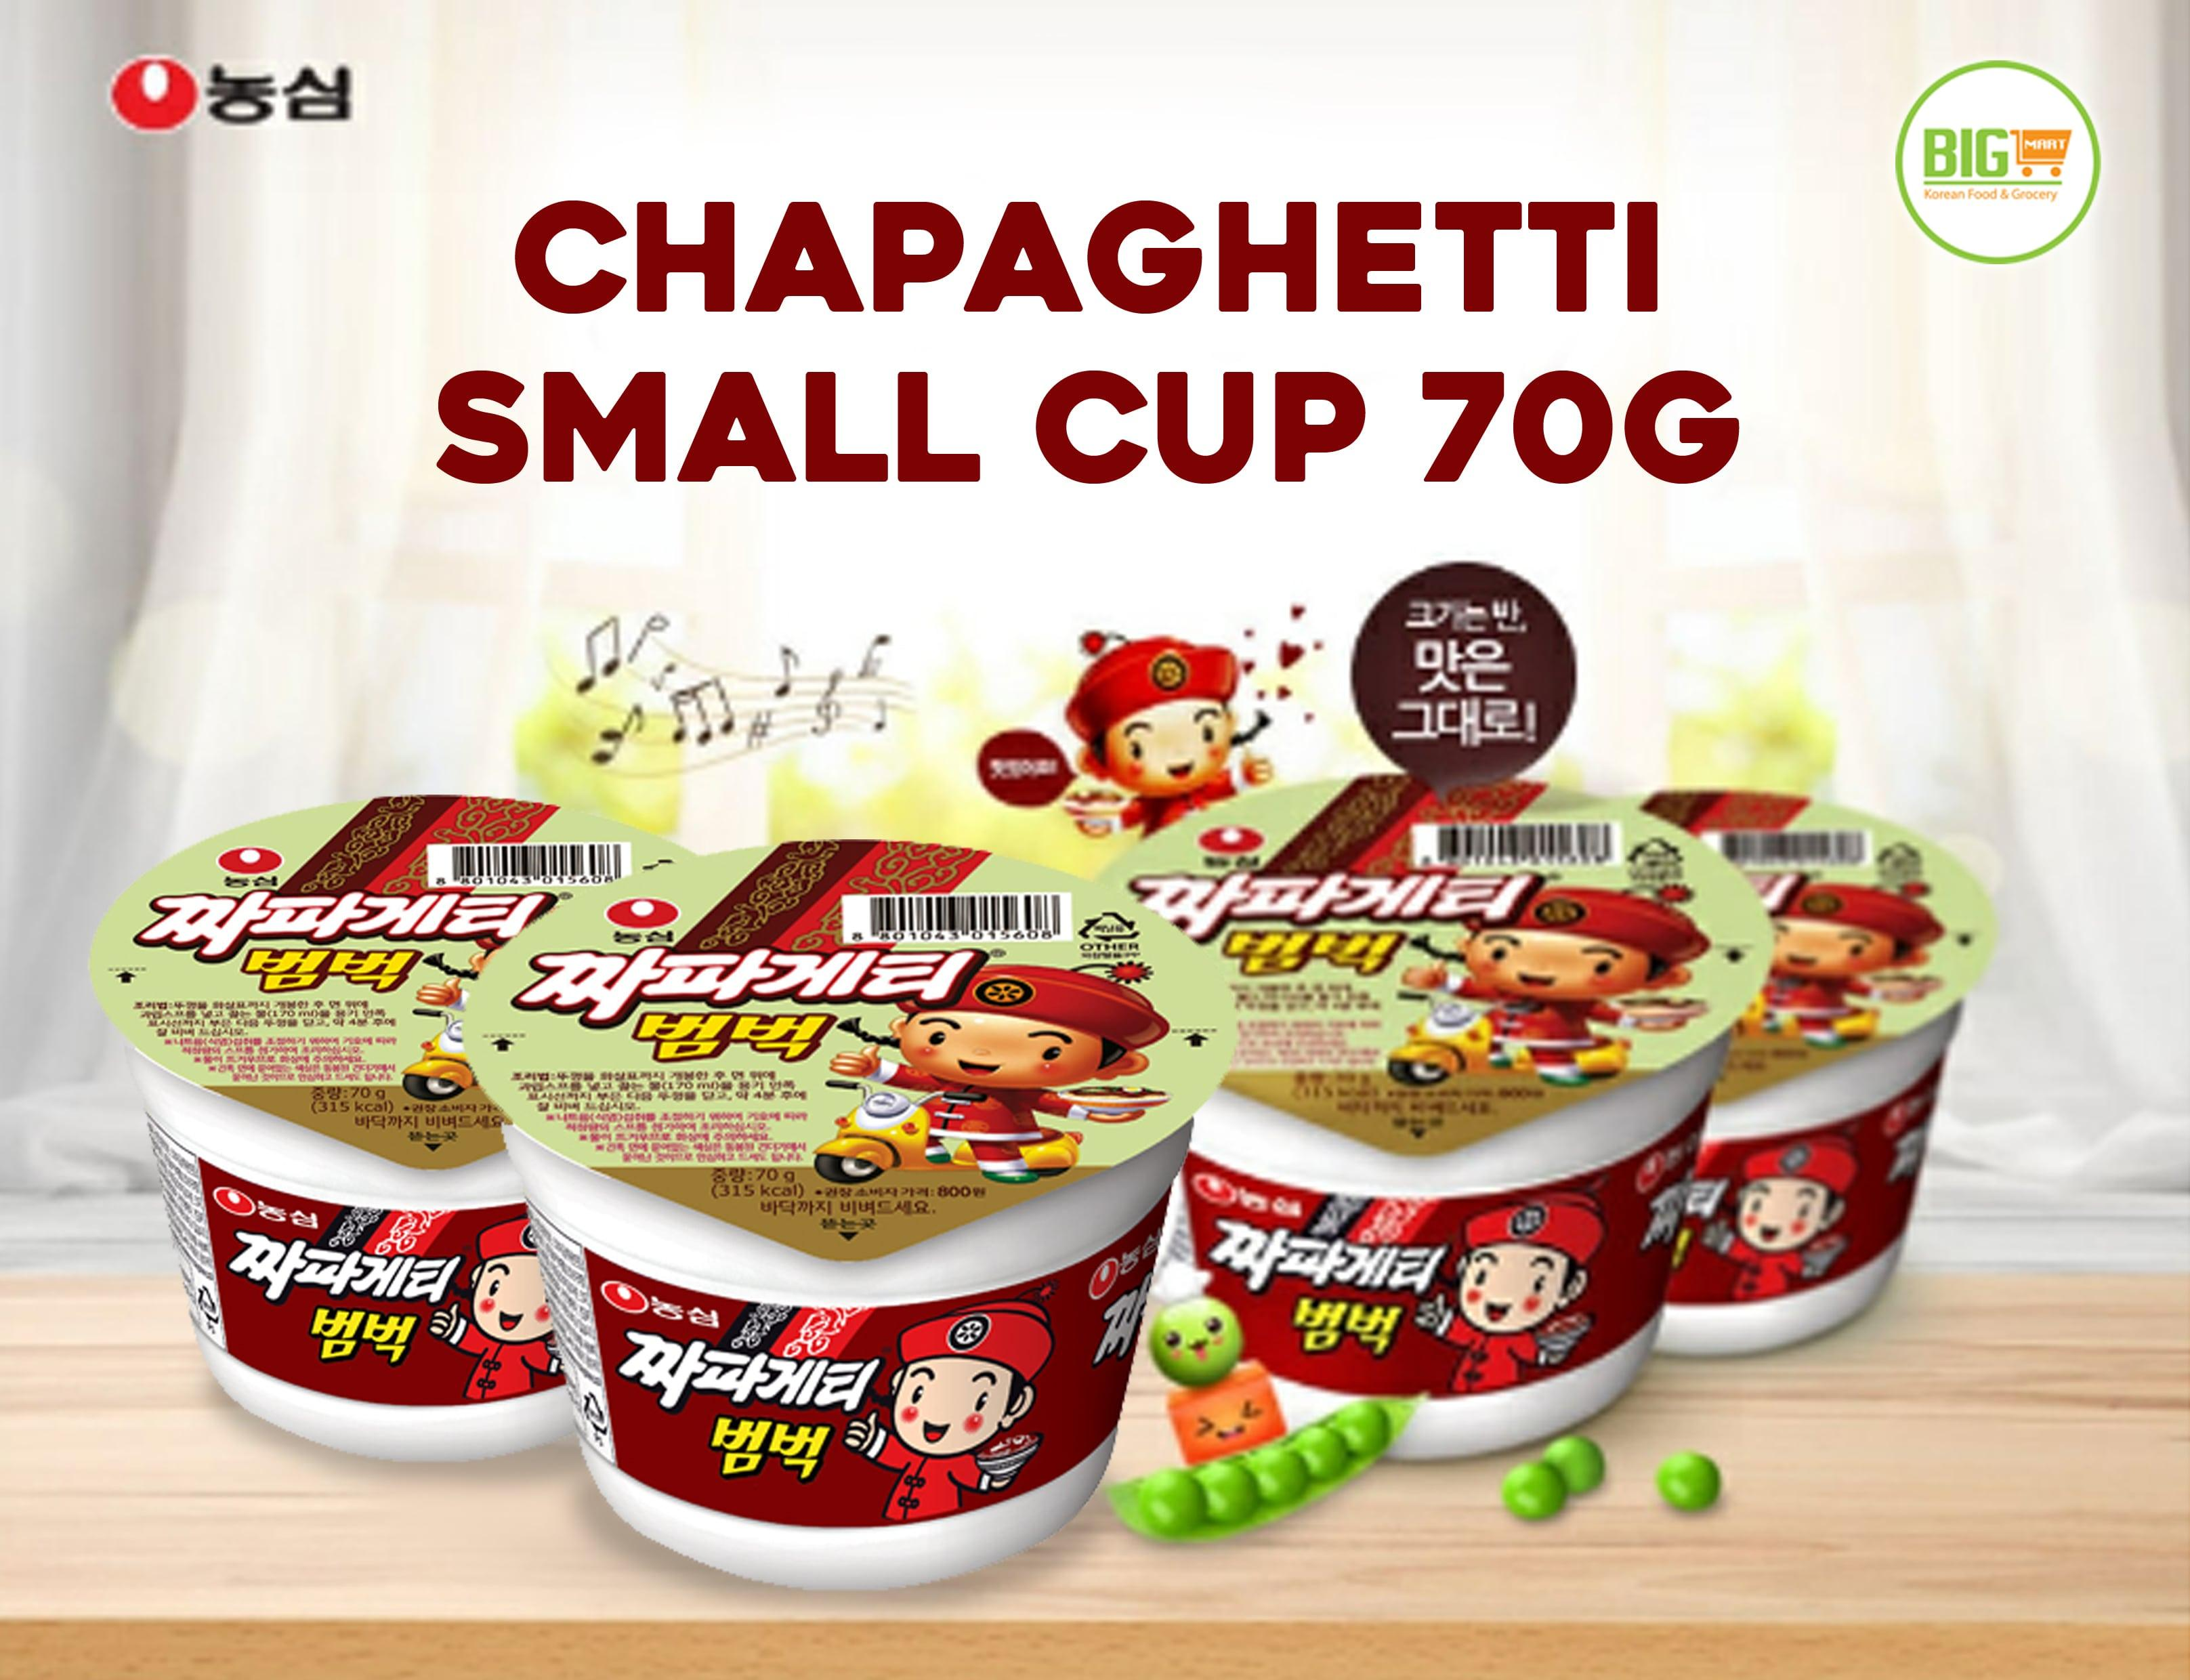 Image result for Korean Nongshim Chapaghetti Small Cup 70g